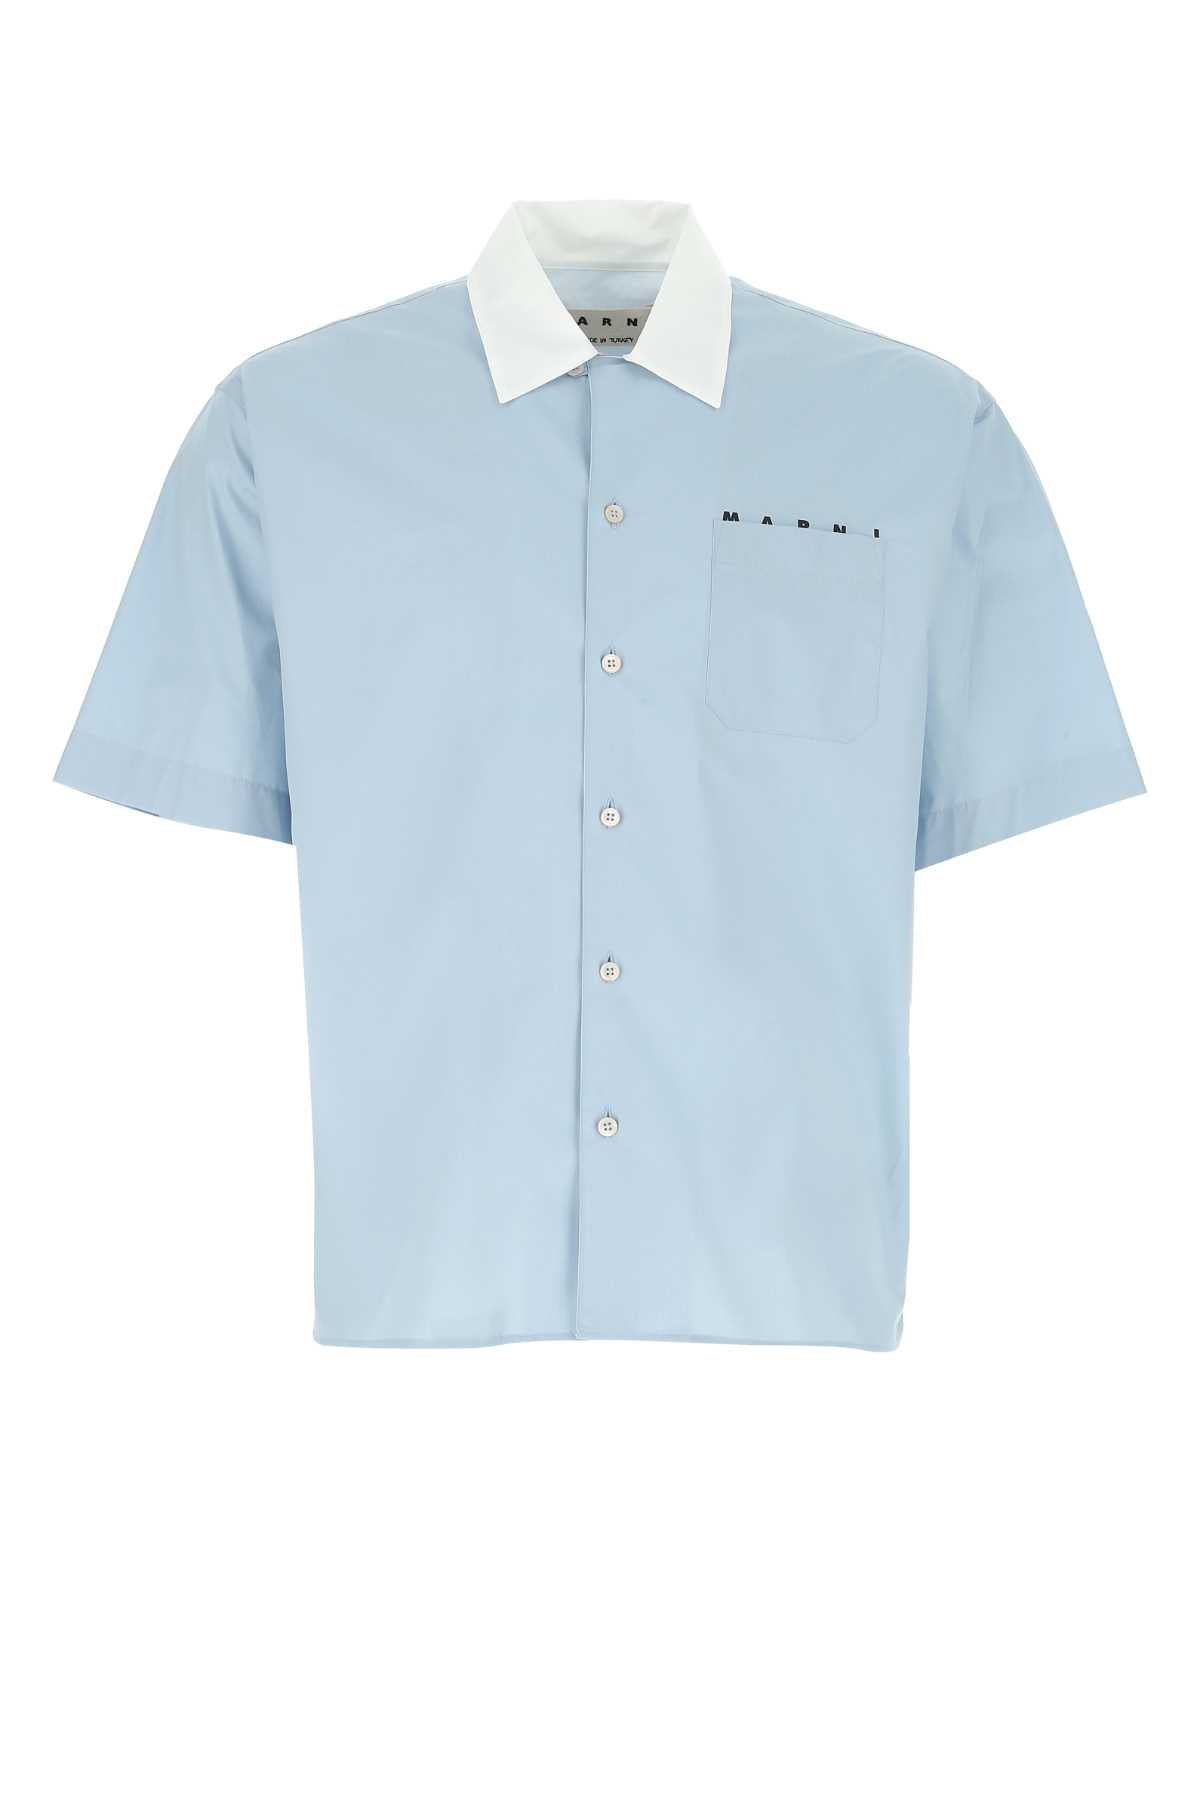 Marni Contrast Collar Bowling Shirt In Blue